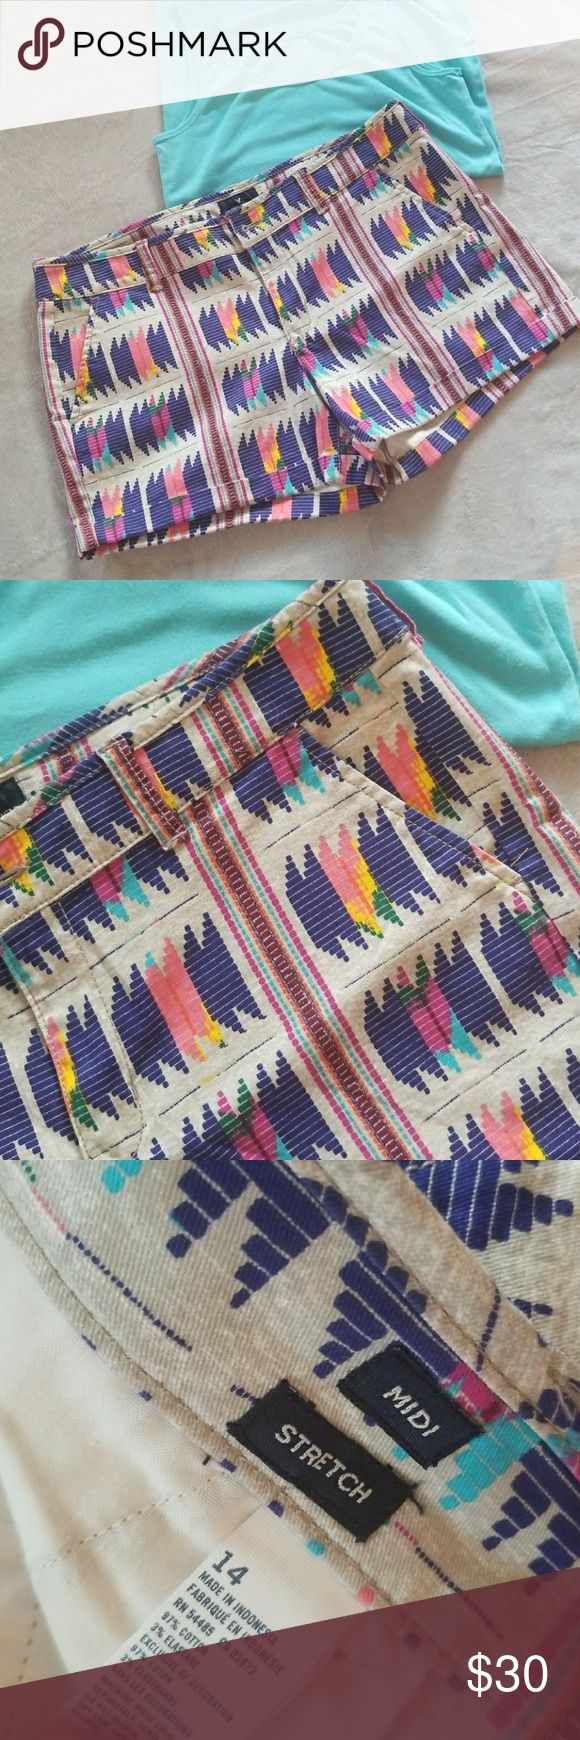 AE shorts Cute colorful print. AmericN Eagle shorts in guc size 14. Has front and back pockets. American Eagle Outfitters Shorts